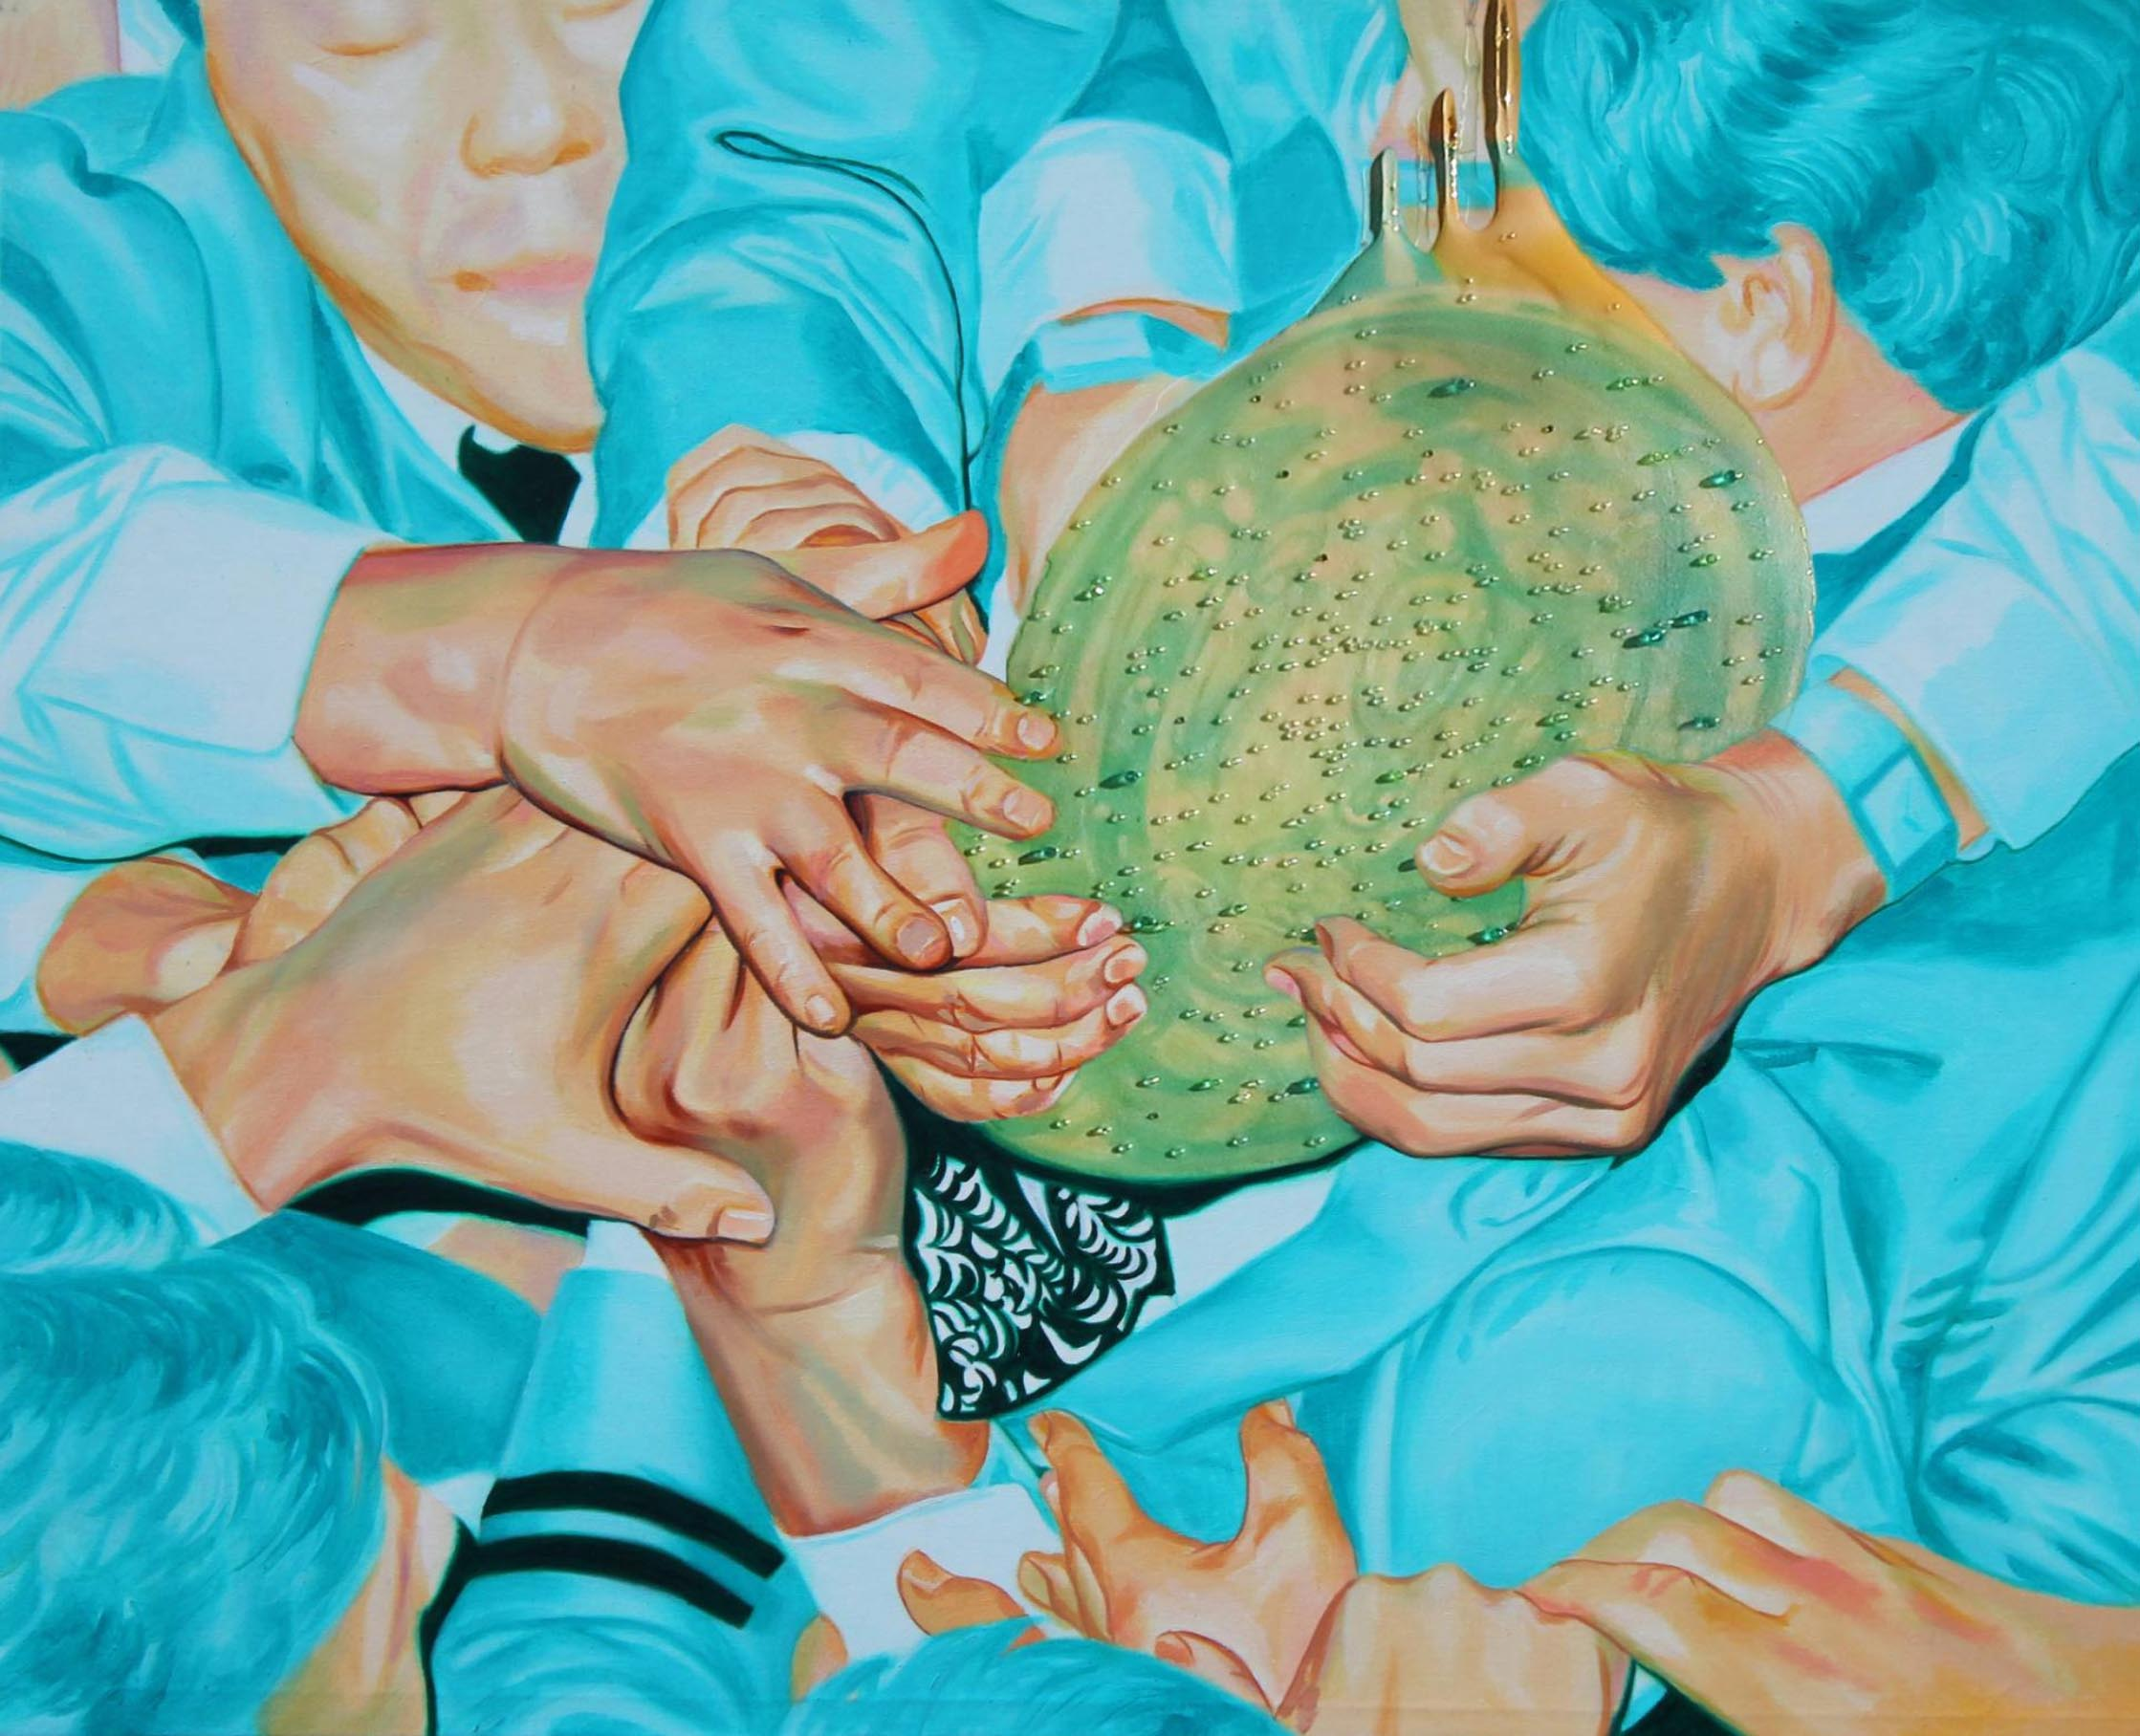 Su hyun Kim, Blue bird II , 2016, oil on canvas, 162 x 130 cm